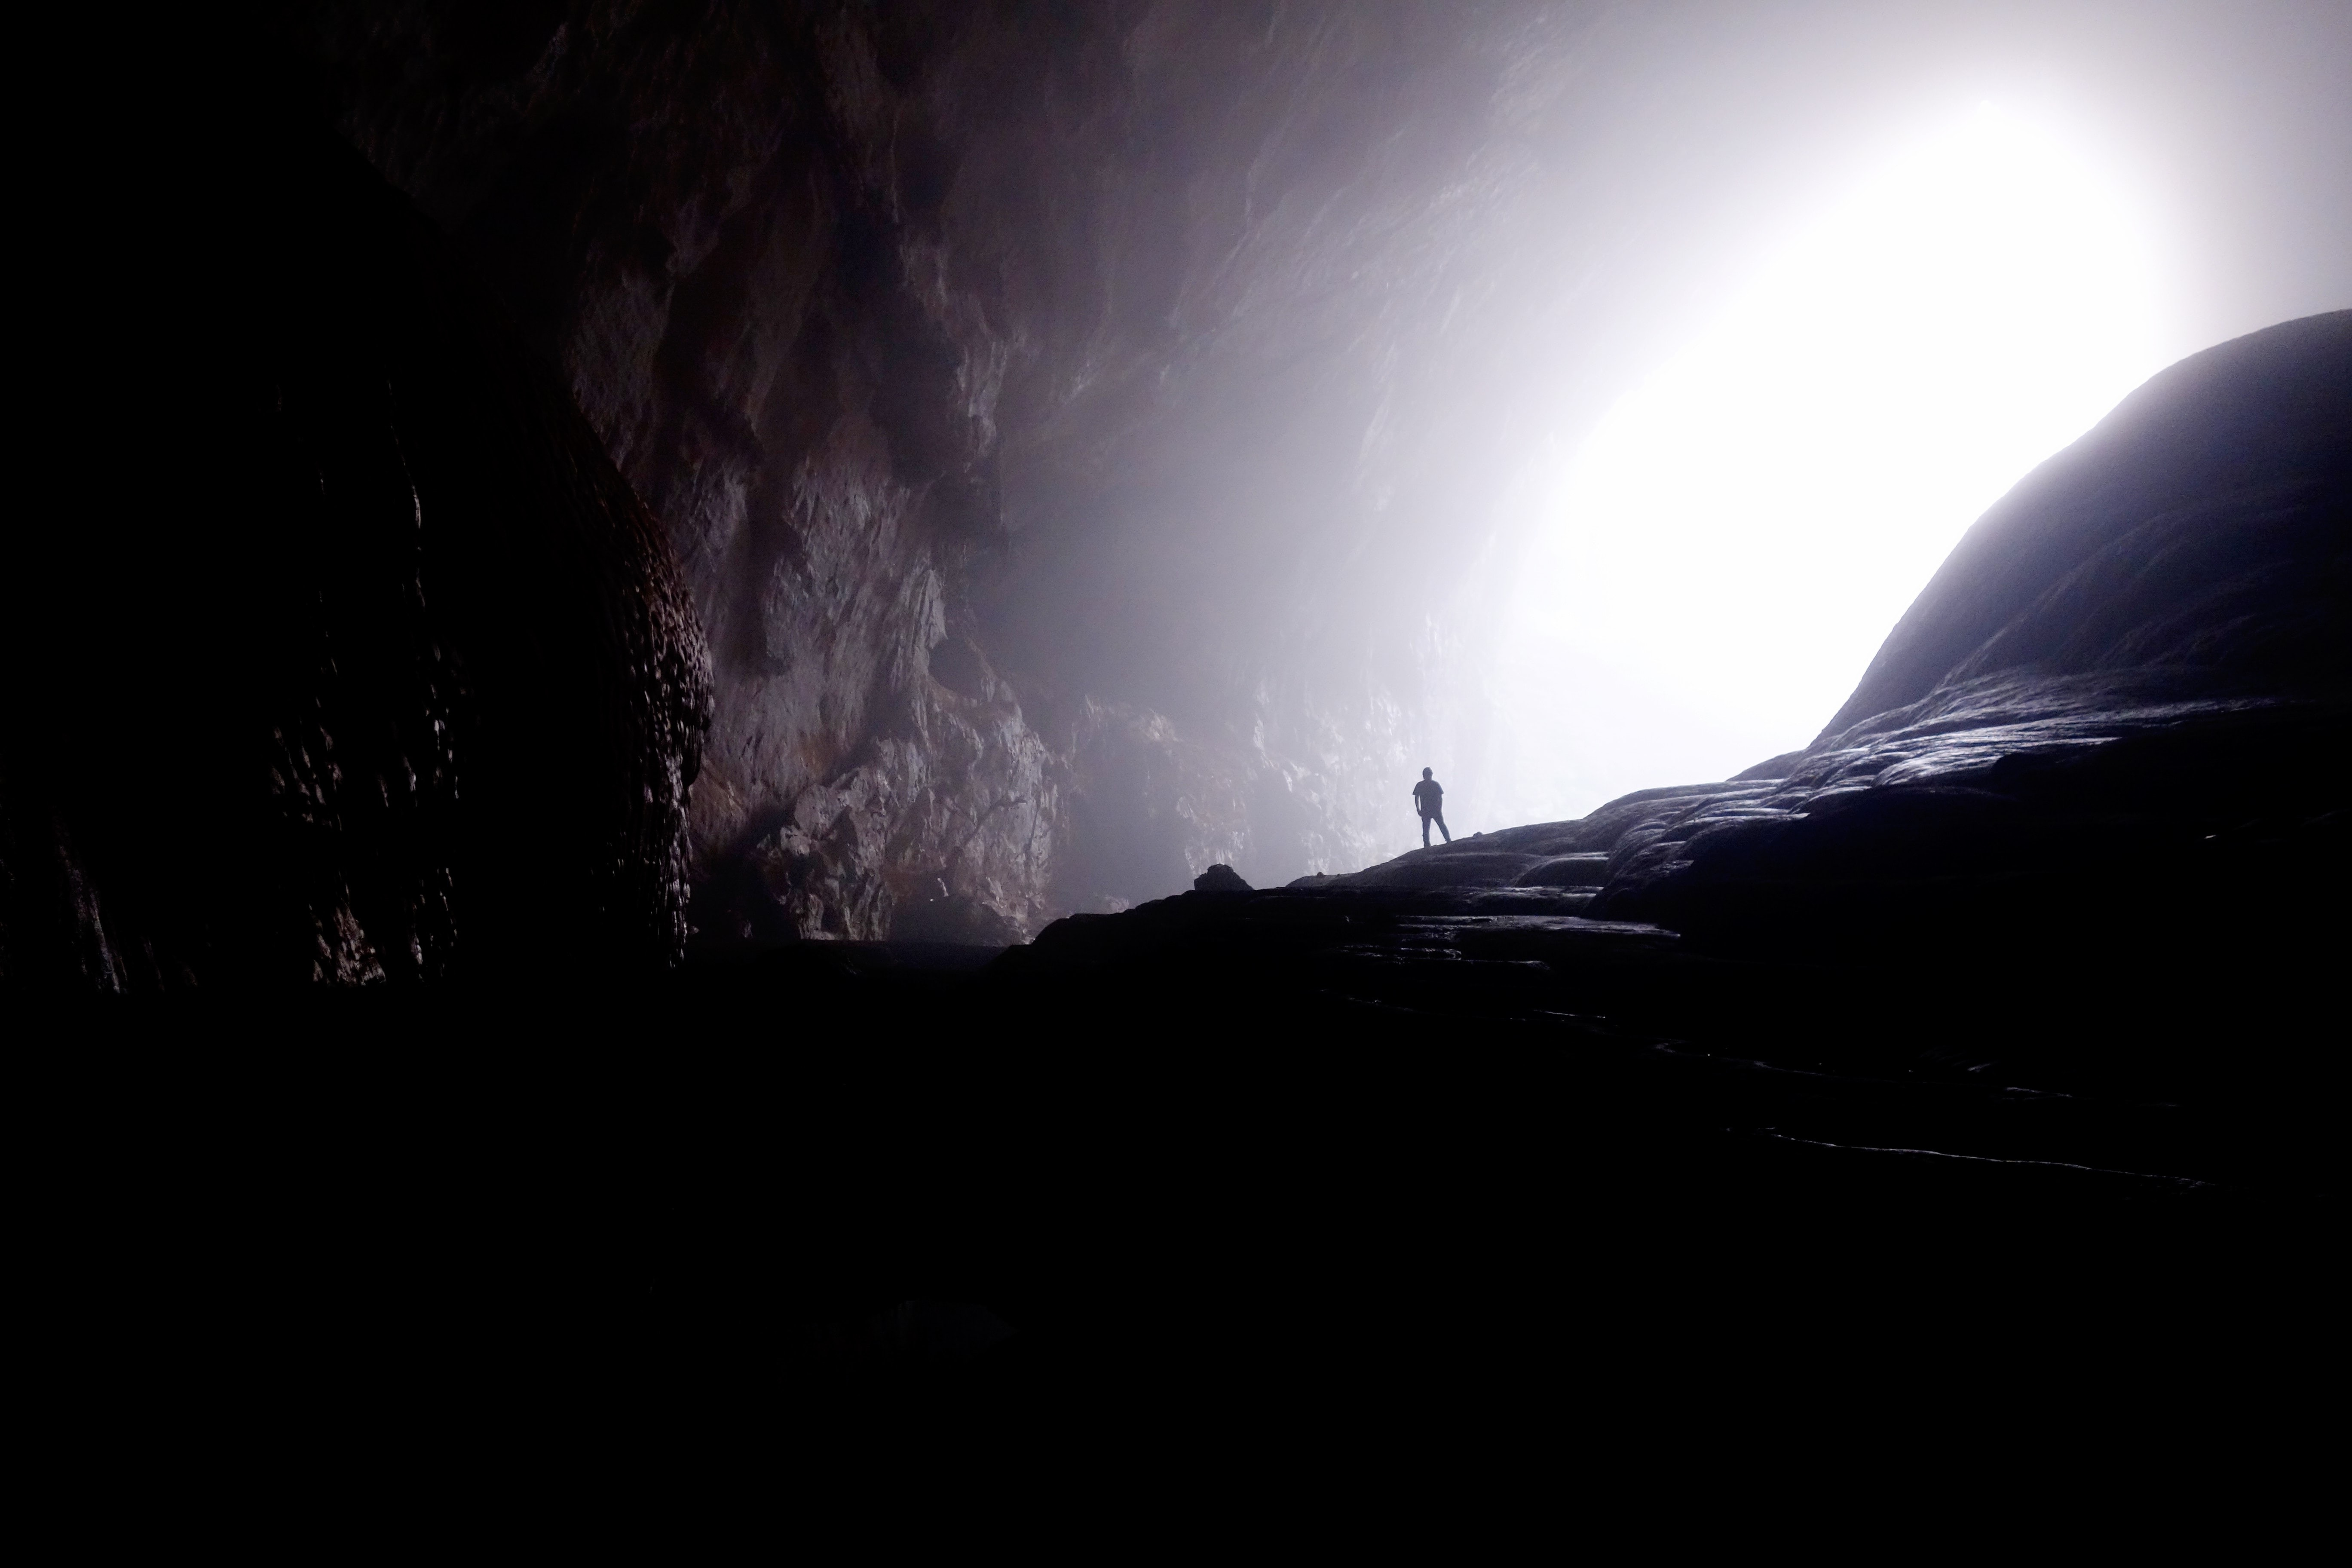 person inside of cave